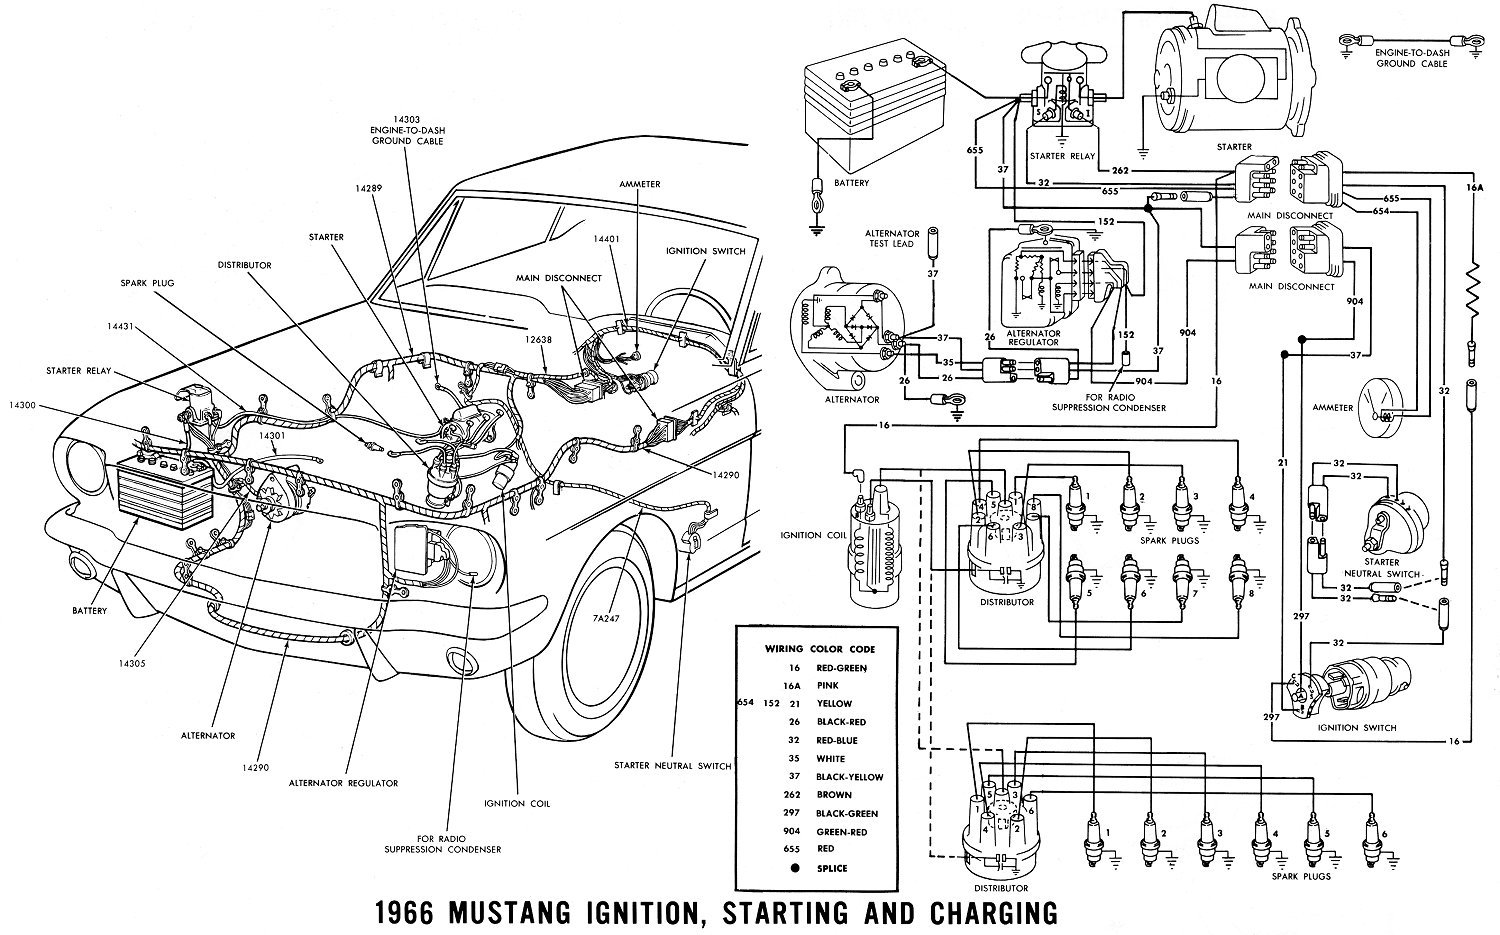 1966 mustang wiring ford mustang forum 1997 ford explorer fuel system diagram 1997 ford f250 fuel system diagram